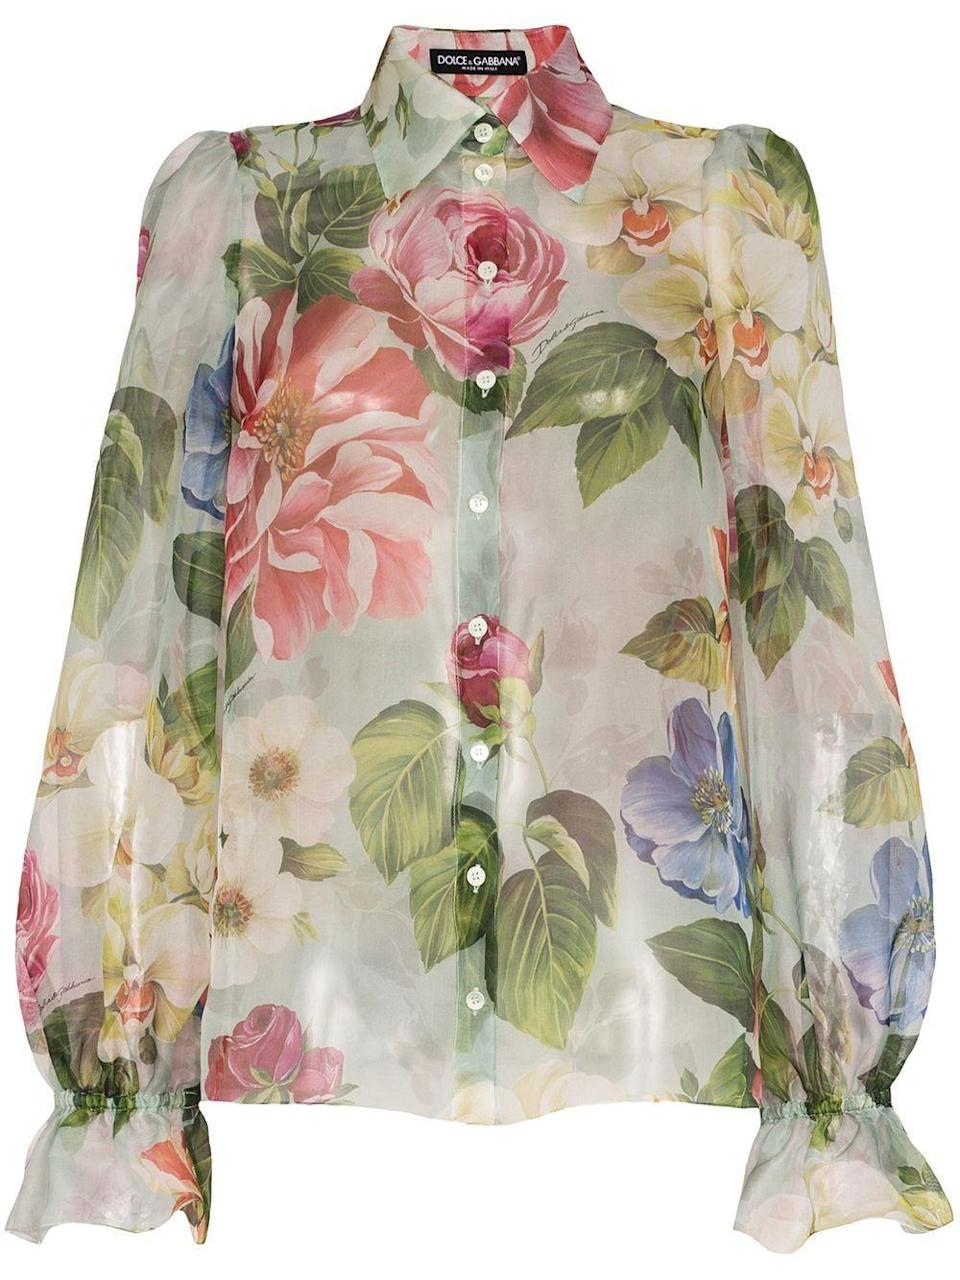 """<p><strong>Dolce & Gabbana</strong></p><p>nordstrom.com</p><p><strong>$458.00</strong></p><p><a href=""""https://go.redirectingat.com?id=74968X1596630&url=https%3A%2F%2Fshop.nordstrom.com%2Fs%2Fdolcegabbana-floral-print-balloon-sleeve-silk-organza-blouse%2F5512060&sref=https%3A%2F%2Fwww.marieclaire.com%2Ffashion%2Fg33324123%2Fsilk-printed-shirts%2F"""" rel=""""nofollow noopener"""" target=""""_blank"""" data-ylk=""""slk:Shop It"""" class=""""link rapid-noclick-resp"""">Shop It</a></p><p>This lightweight silk blouse will compliment a pencil skirt, tucked in, with a hardware or <a href=""""https://www.marieclaire.com/fashion/a32971079/best-designer-belts-for-women/"""" rel=""""nofollow noopener"""" target=""""_blank"""" data-ylk=""""slk:logo belt"""" class=""""link rapid-noclick-resp"""">logo belt</a>. For days off, style it with a bralette and boyfriend jeans.</p>"""